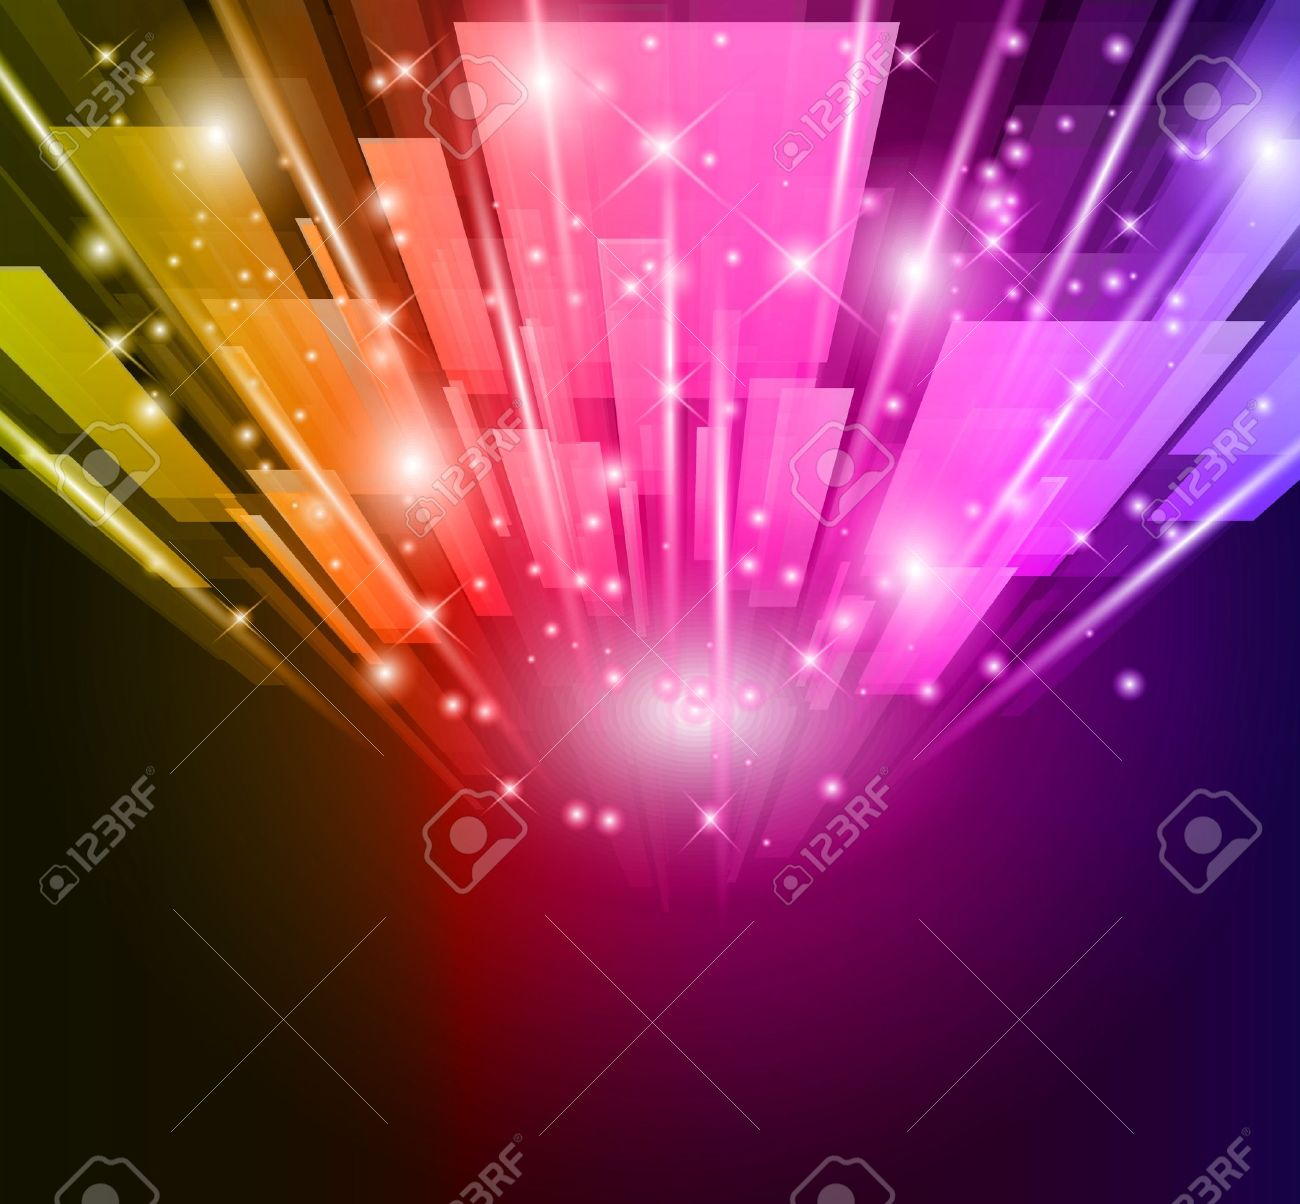 abstract glow of lights for business or corporate flyers background